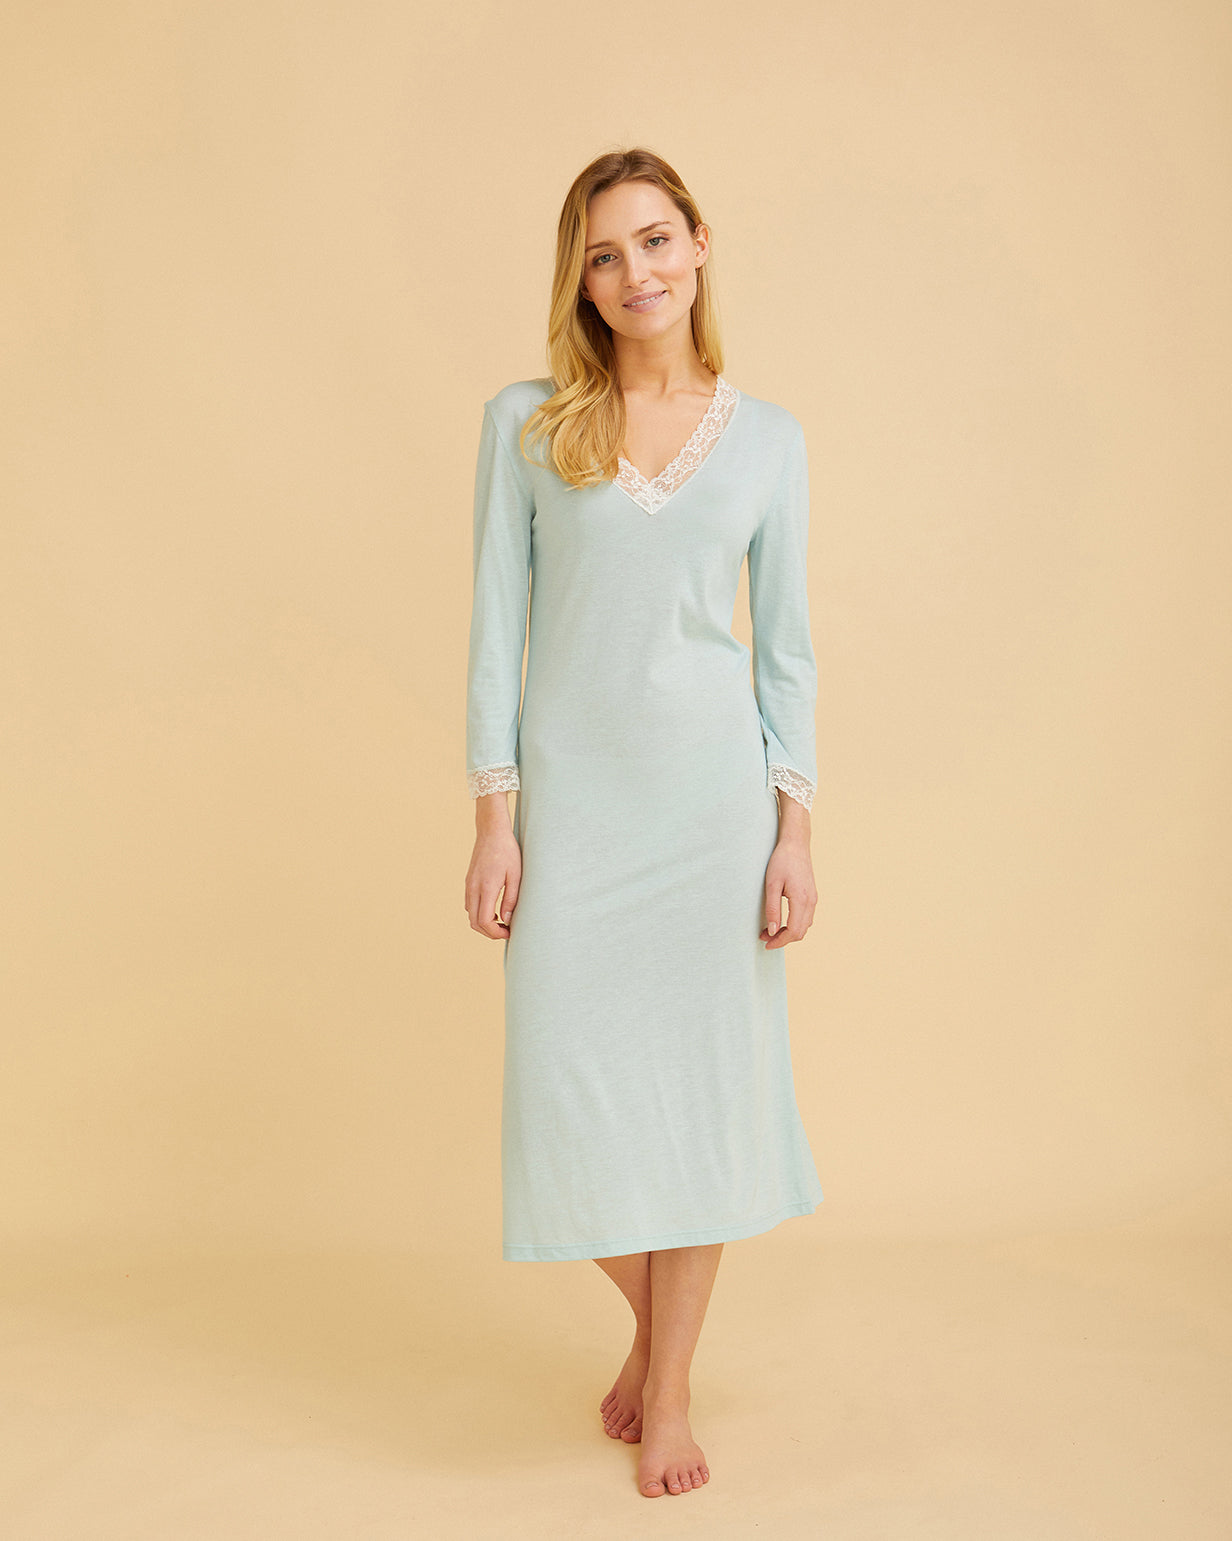 Women's Jersey Nightdress With Lace Mint Green | Bonsoir of London